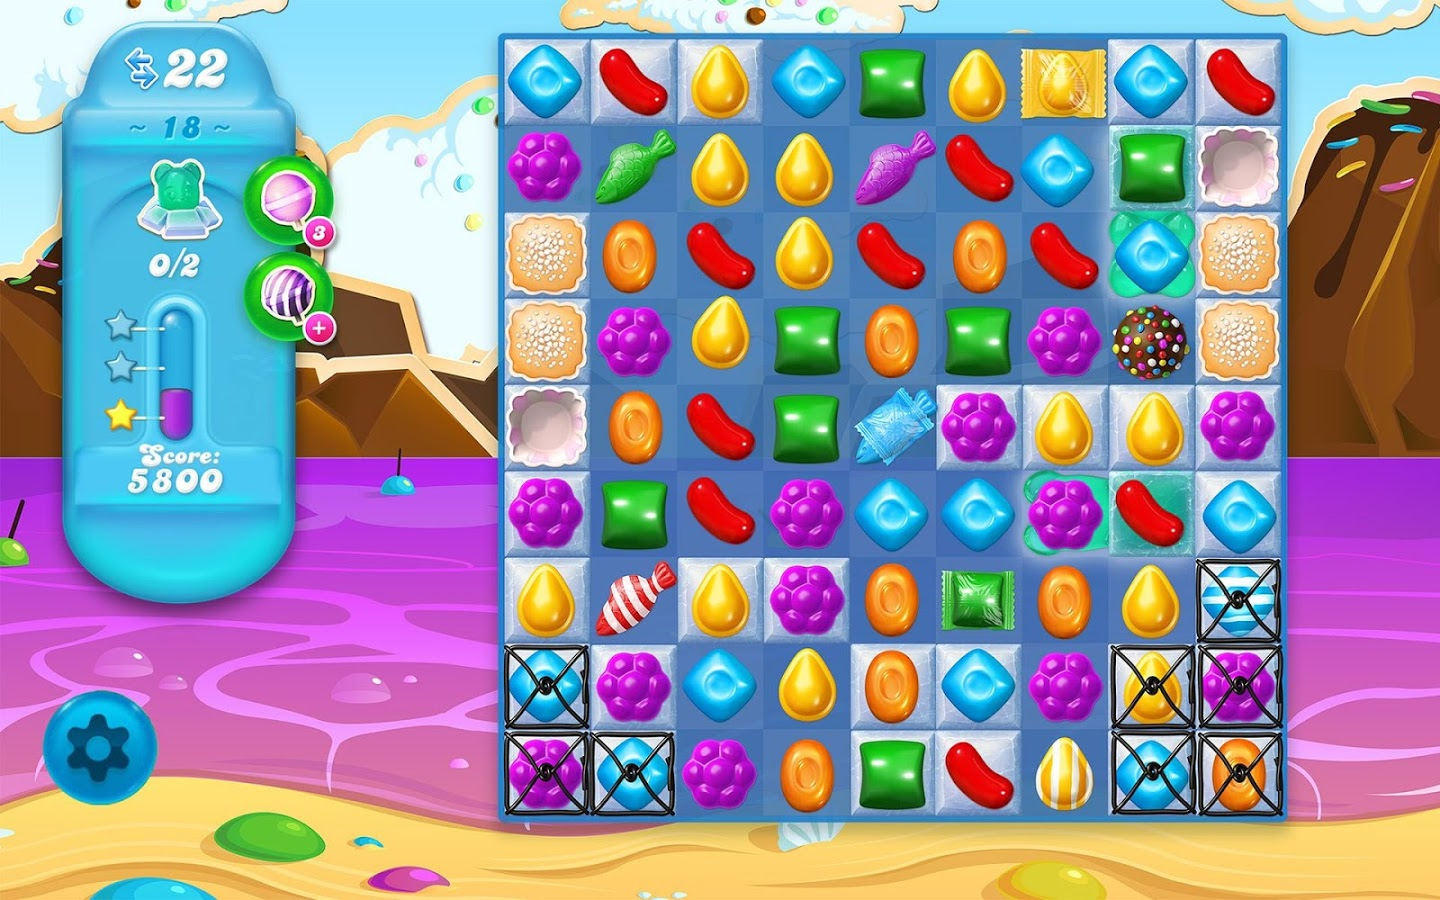 Candy Crush Saga [Free PC Download] - Free Games